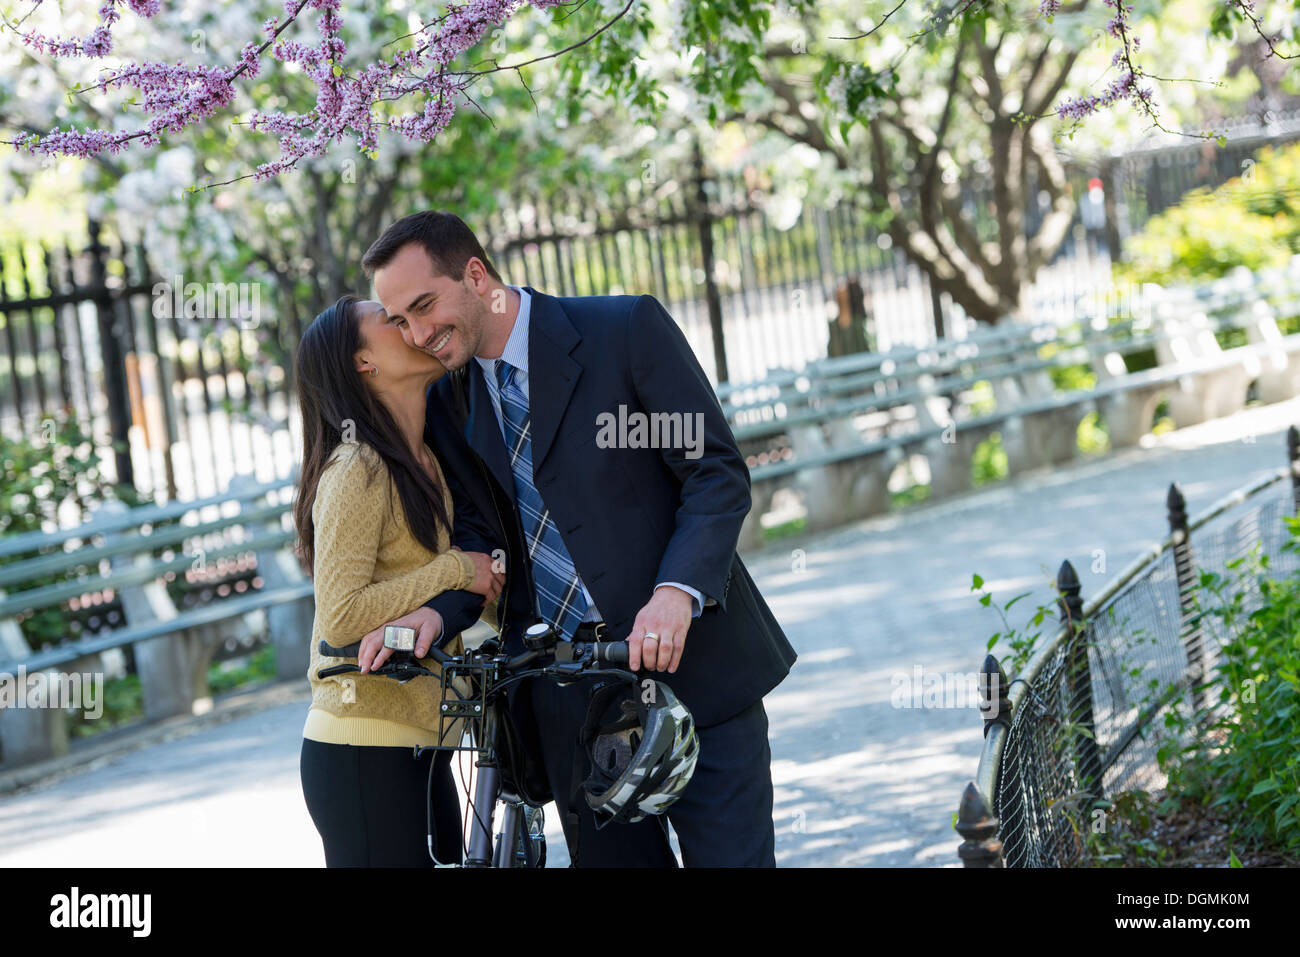 A man in a business suit astride a bicycle. A woman kissing him goodbye. - Stock Image